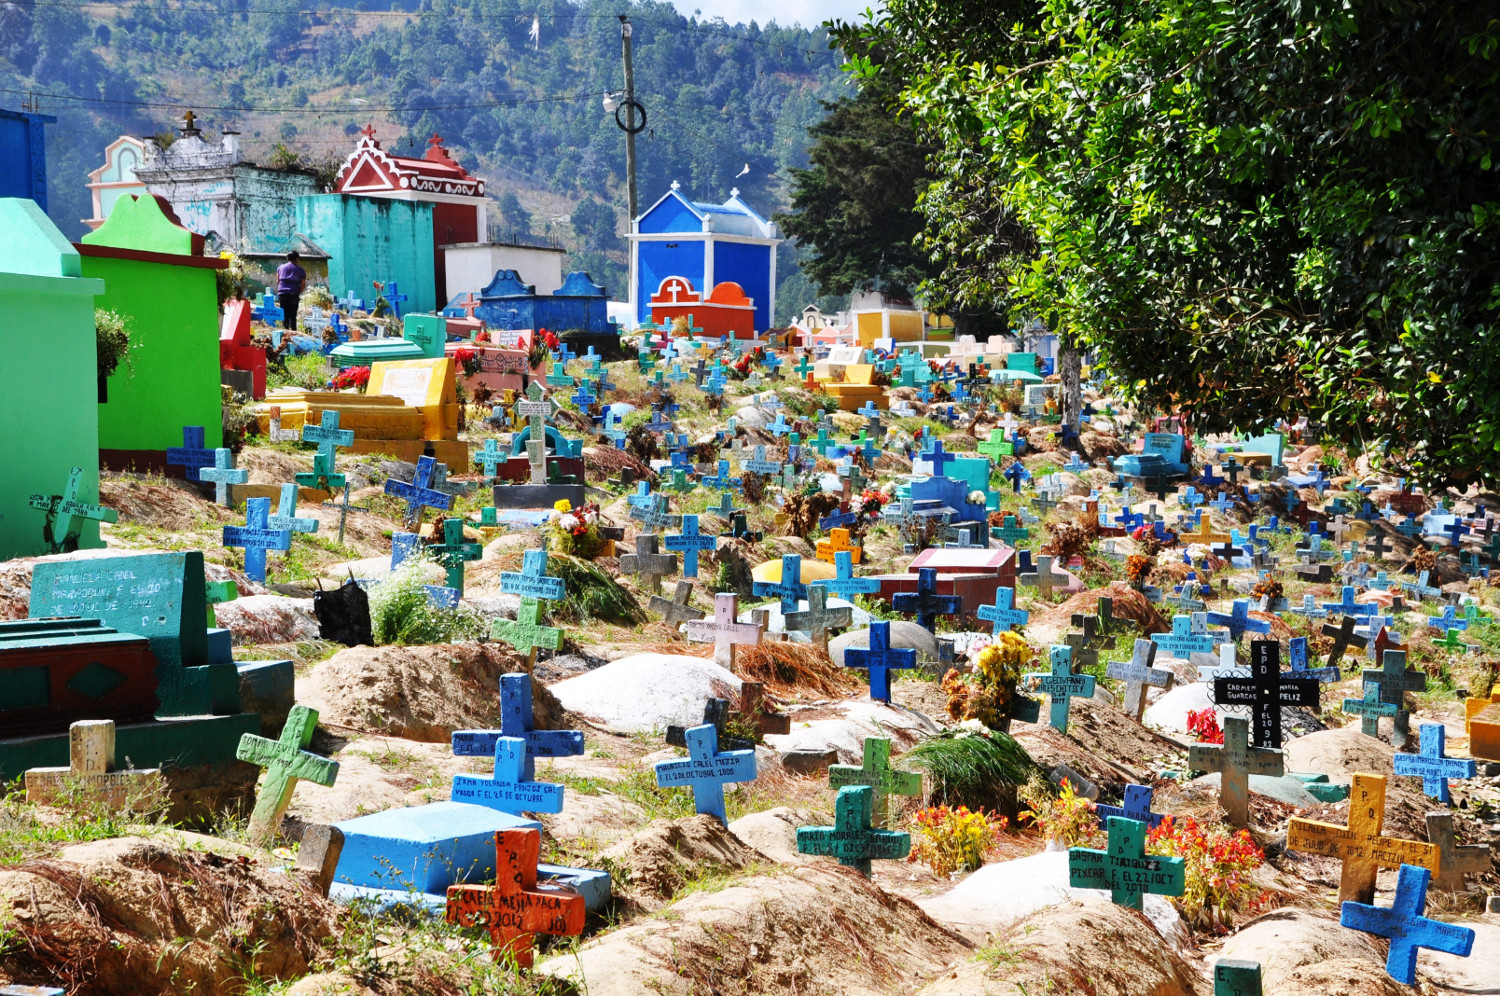 Farbenfroher Friedhof von Quetzaltenango | Colorful cemetery at Quetzaltenango